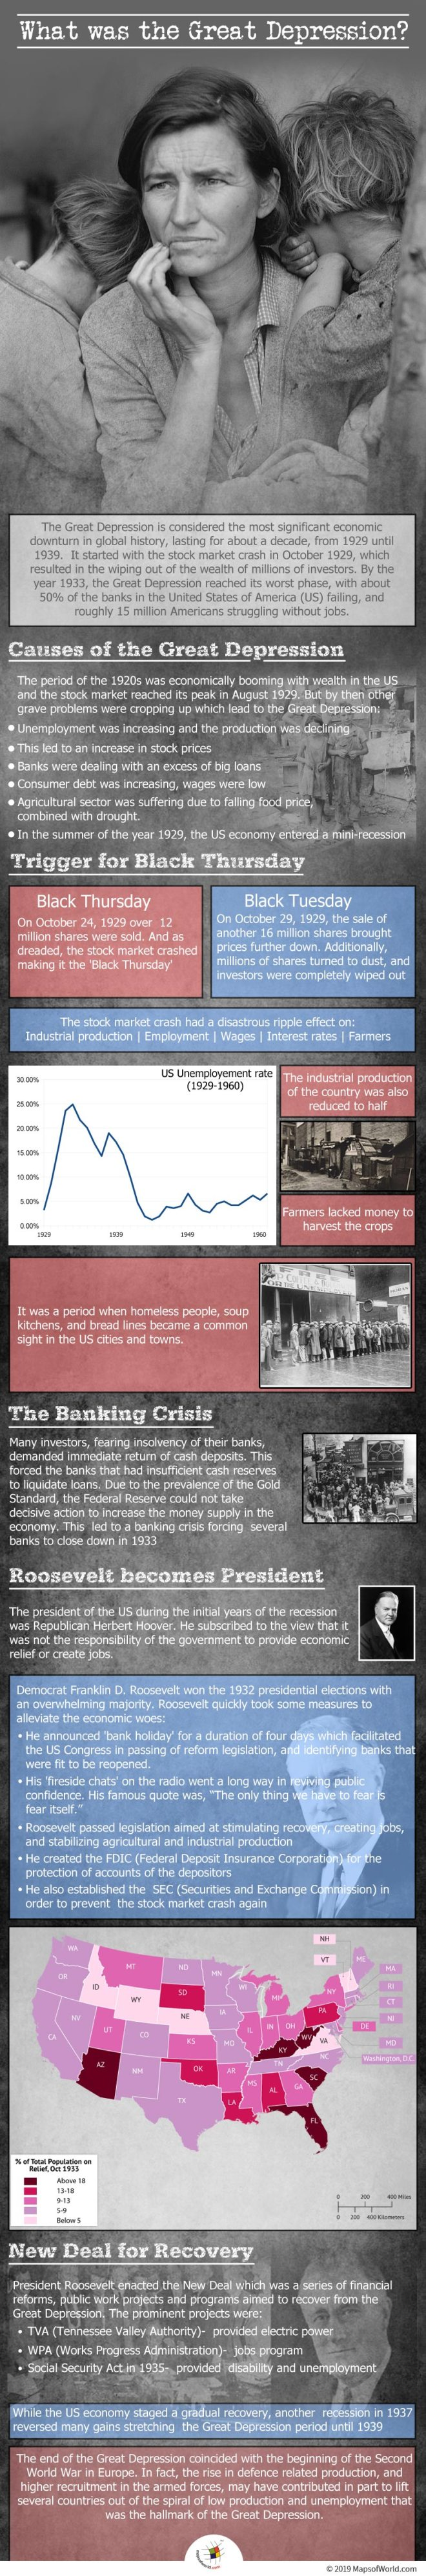 Infographic Giving Details on The Great Depression